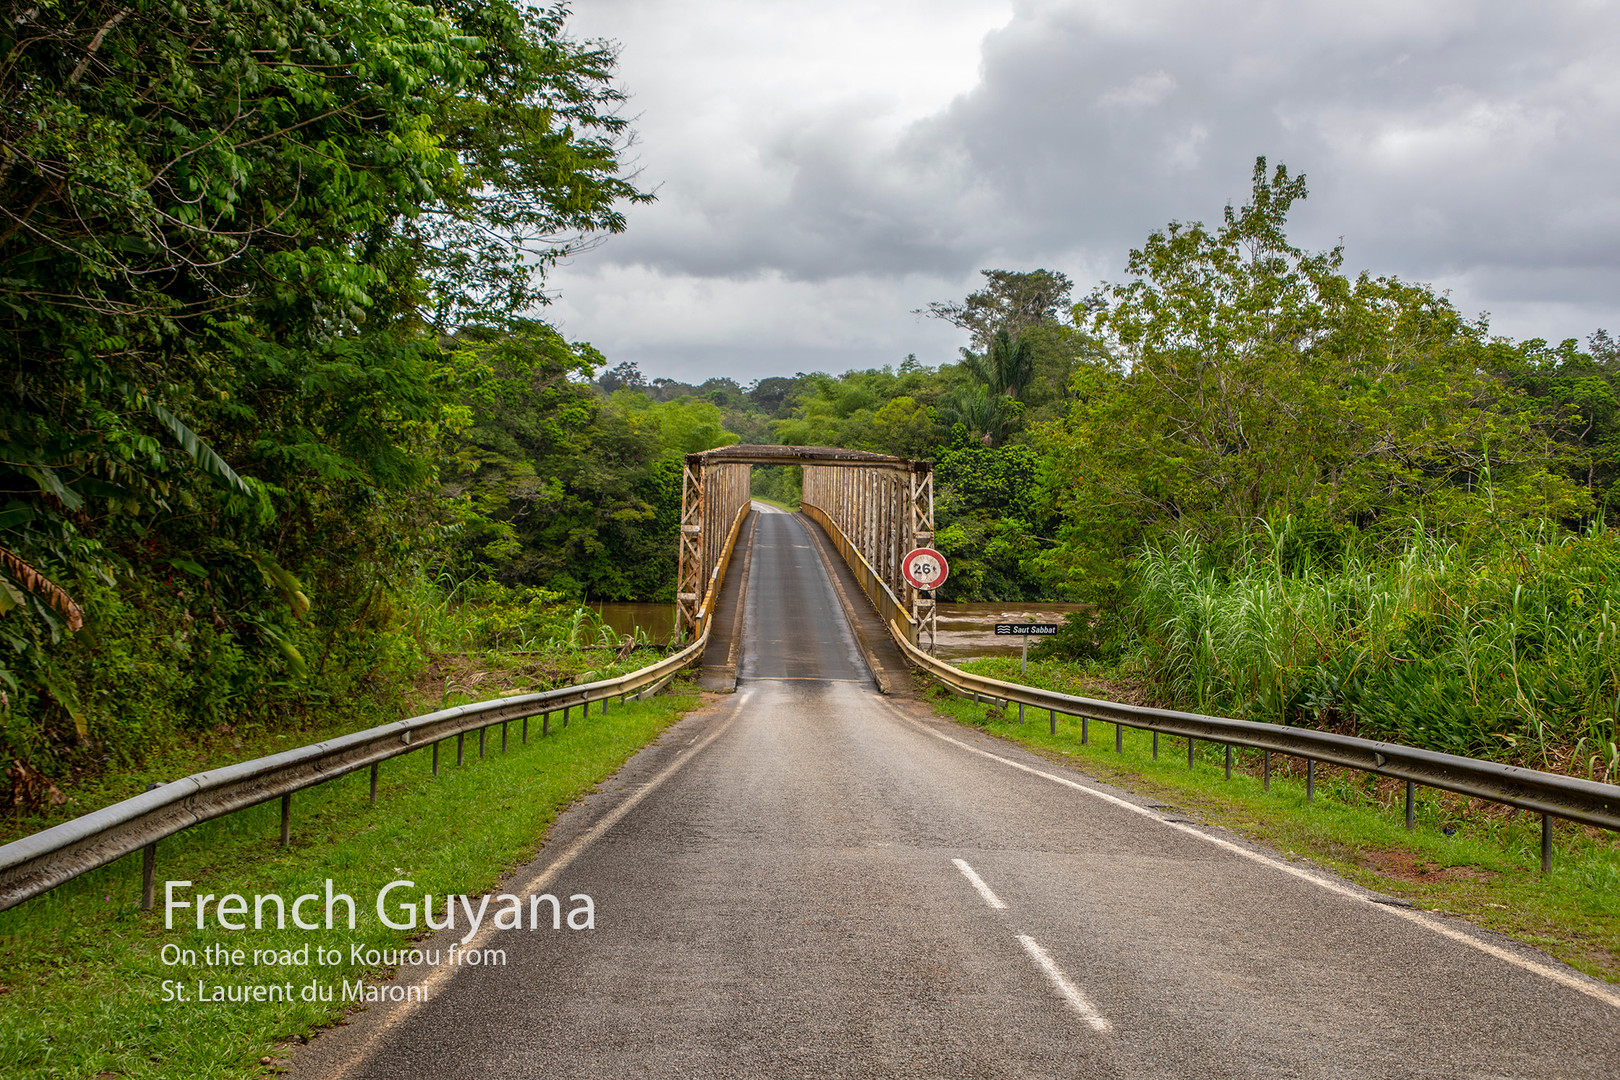 2019-05-15 French Guyana POW (03) 452A66